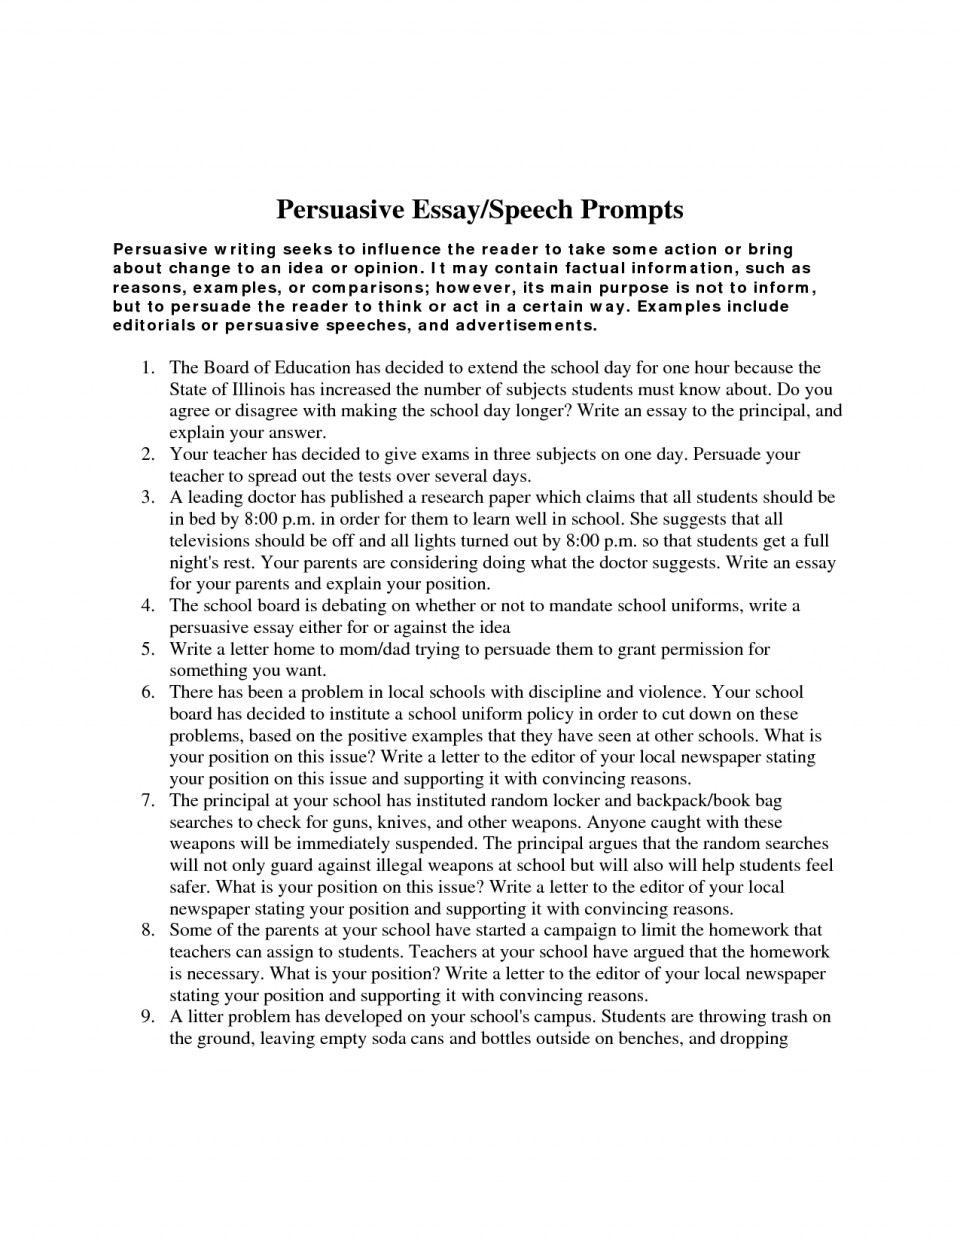 029 Persuasive Essay On Bullying Prompts Cybers Picture Inspirations Essays In School Effects Of The Main Dreaded Argumentative Topics Schools Examples Cyberbullying 960